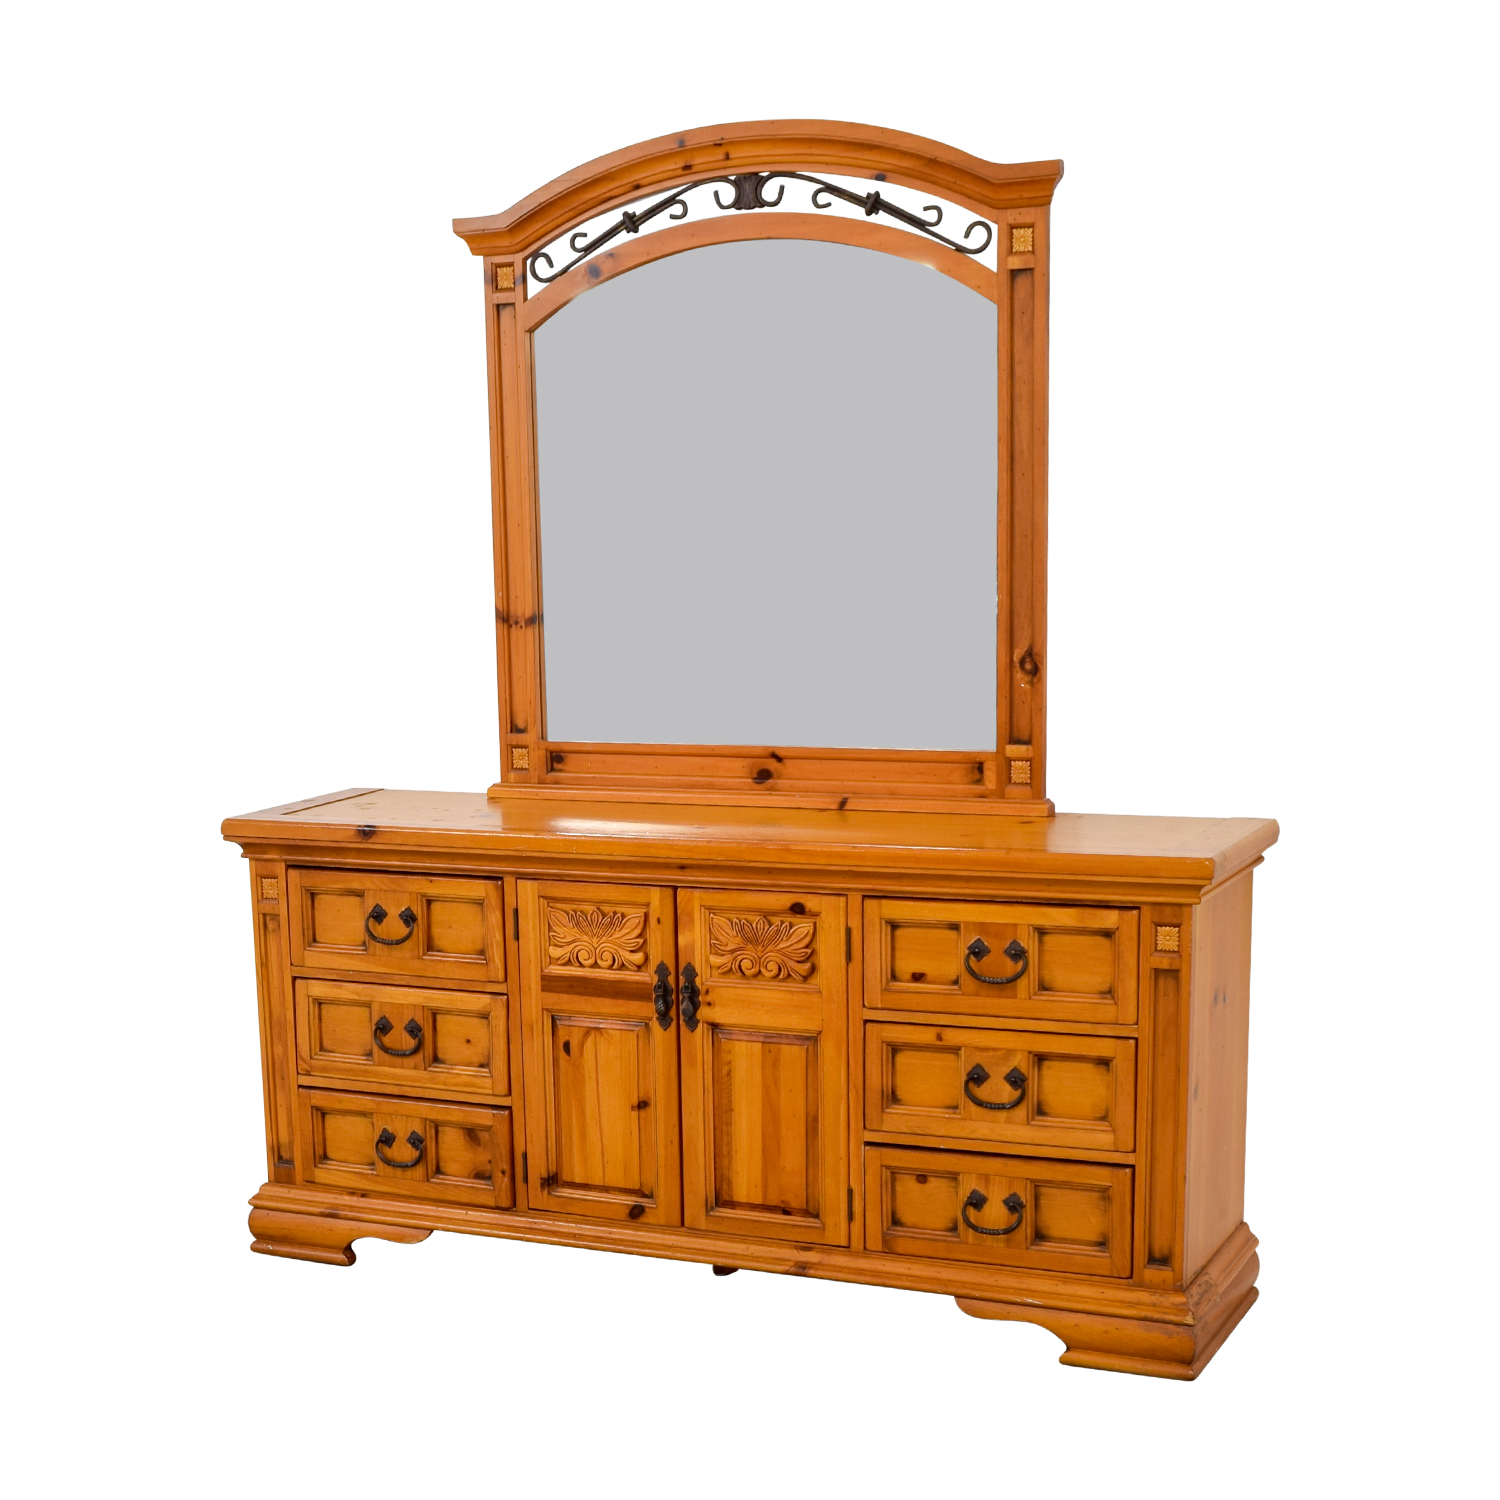 Broyhill Broyhill Six Drawer Dresser with Cabinets and Mirror second hand